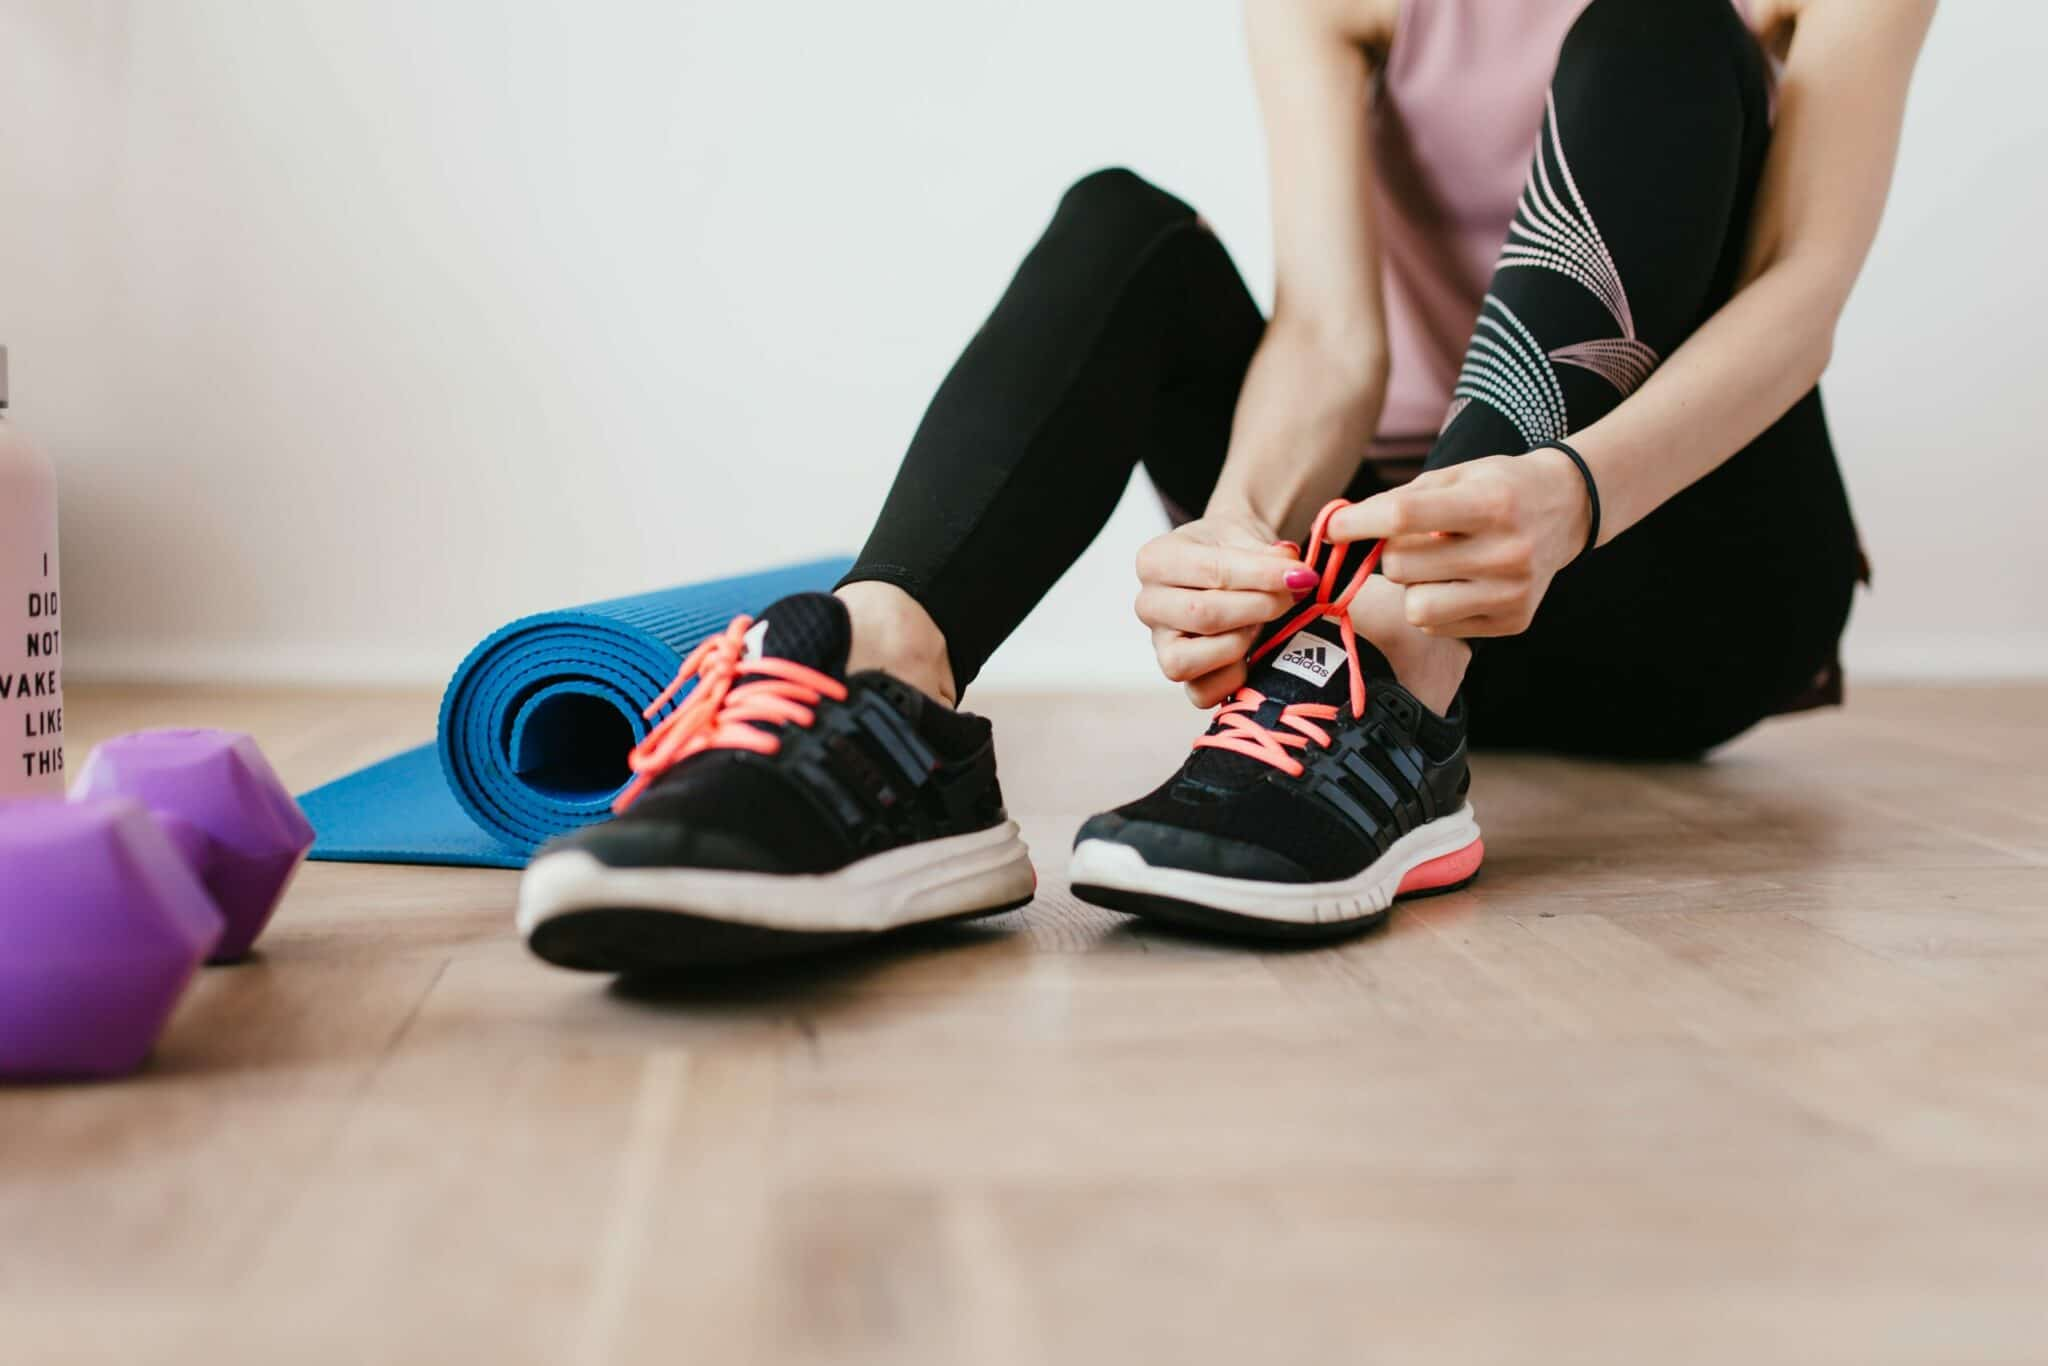 How to Clean my Home Workout Gear